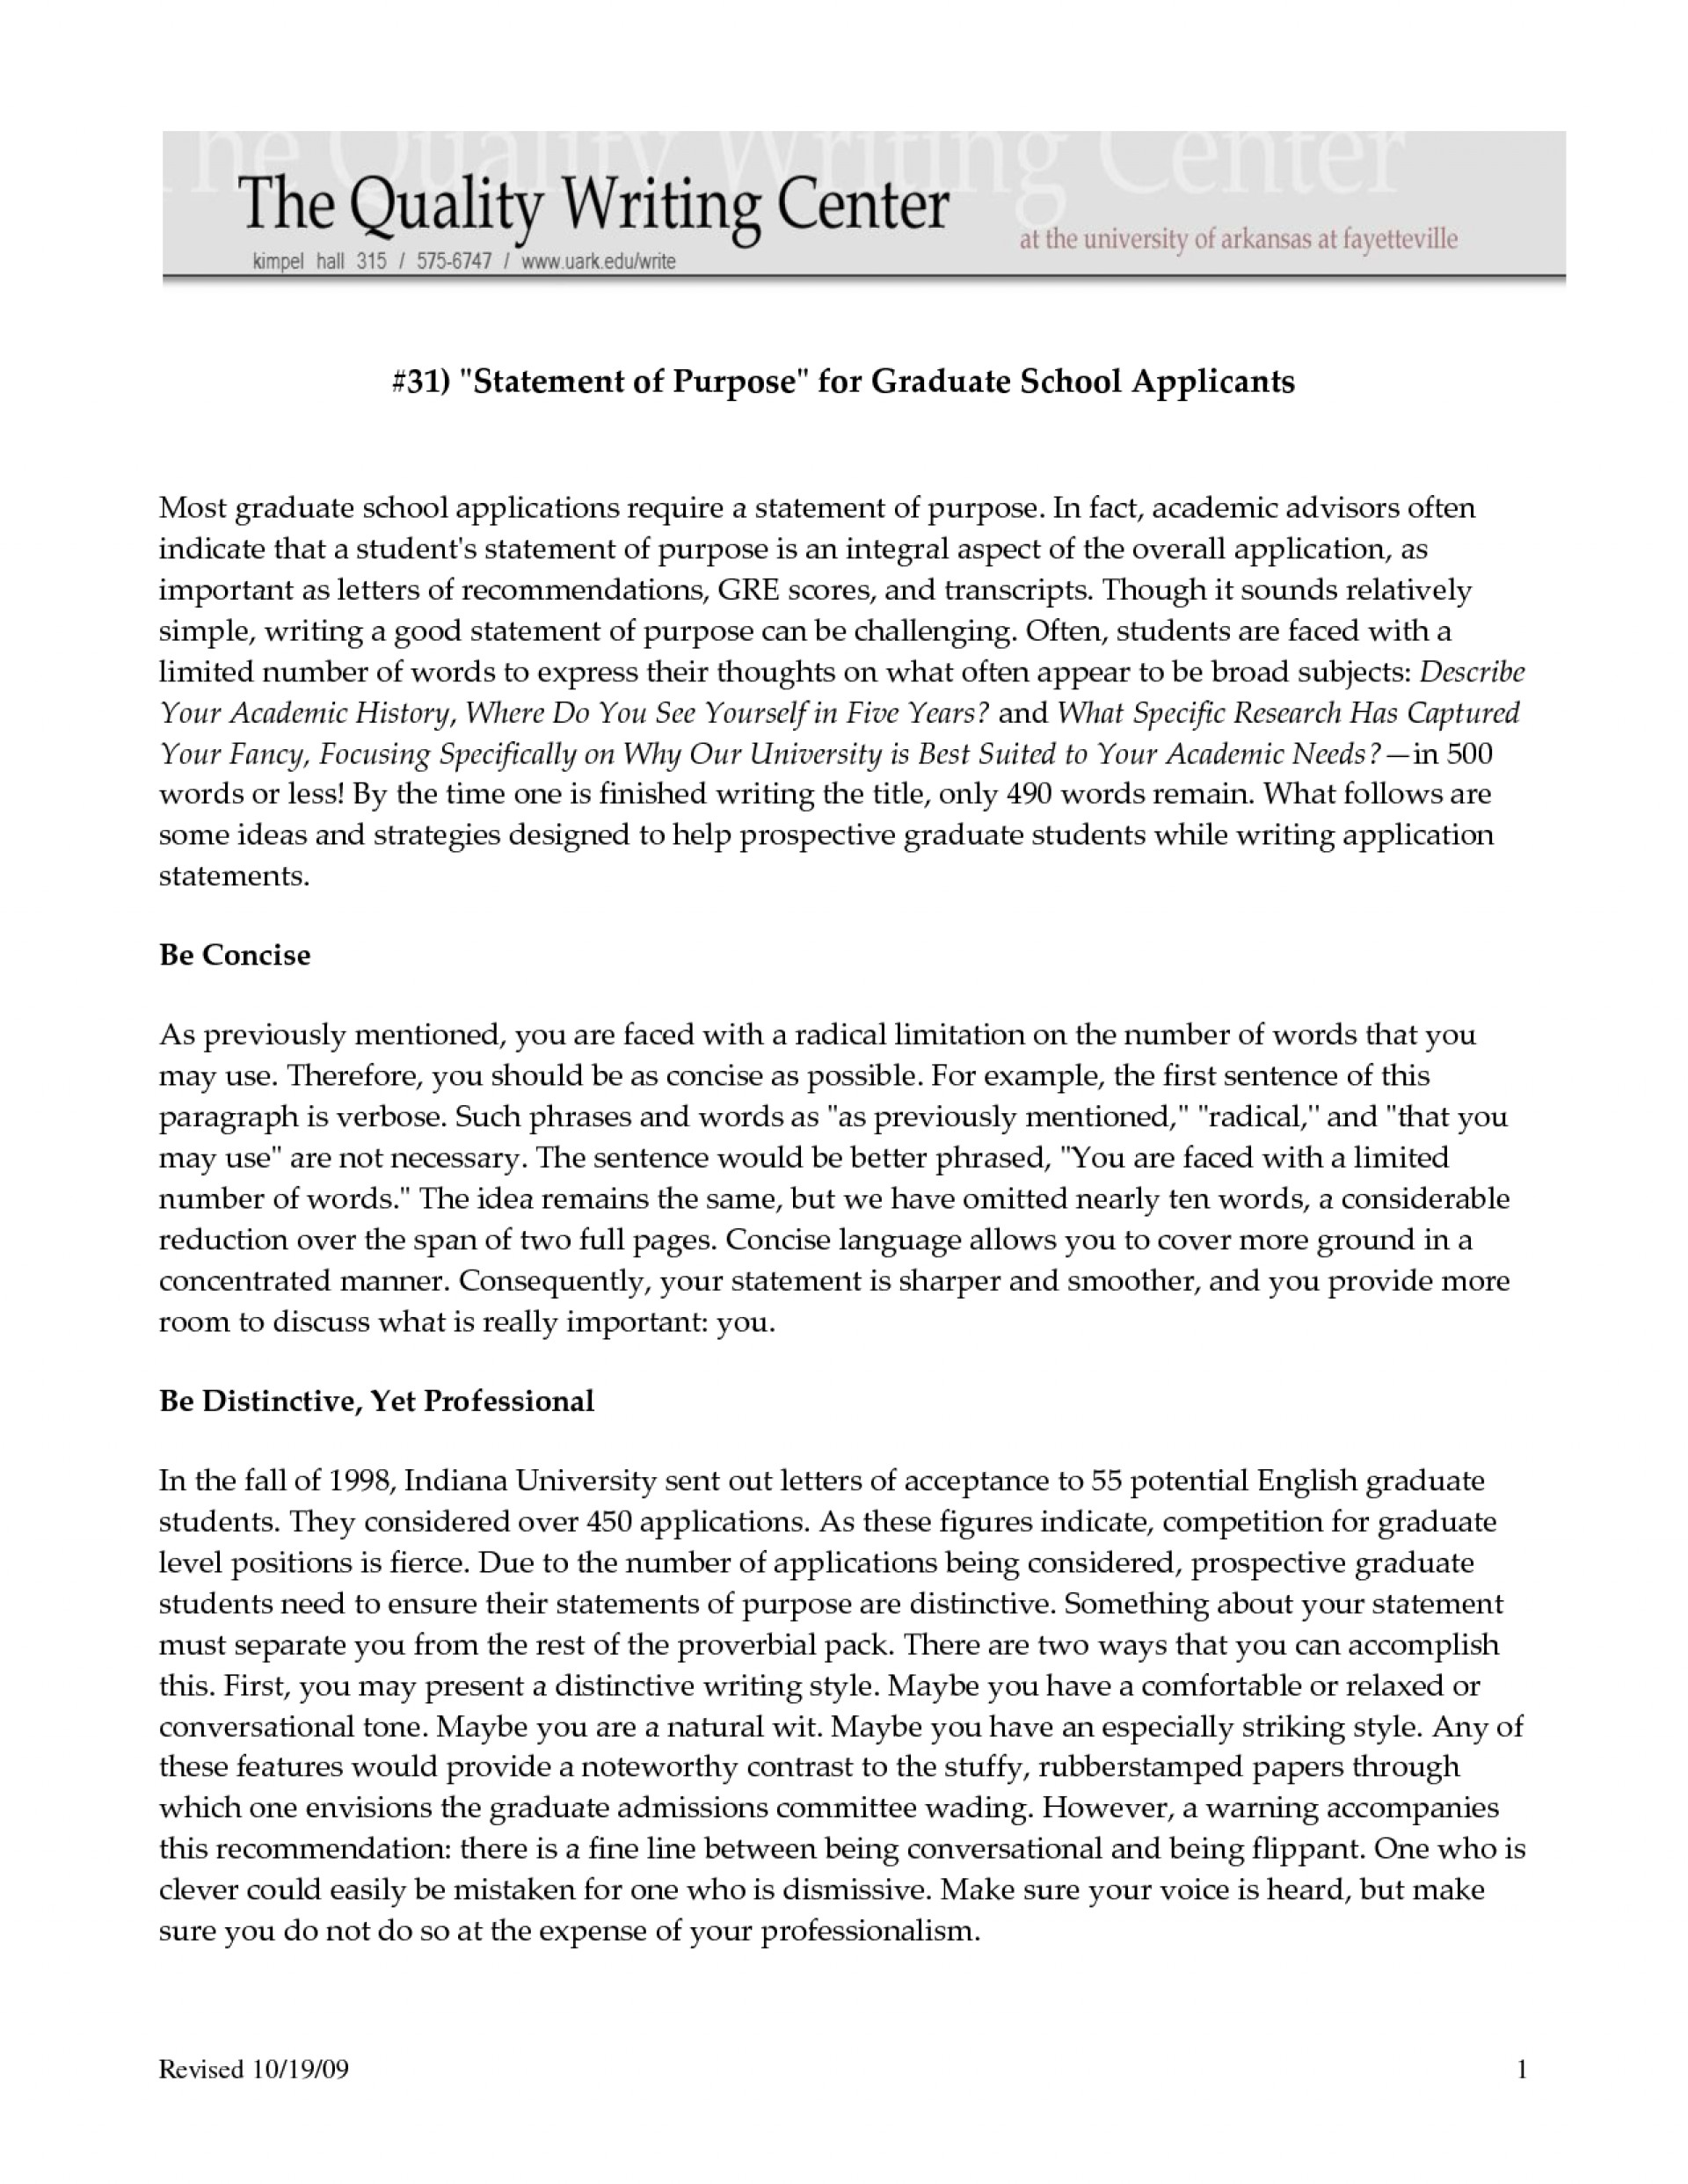 022 Njhs Essay Example Citizenship Grad School Statement Of Purpose Enc Examples Amazing Character 1920